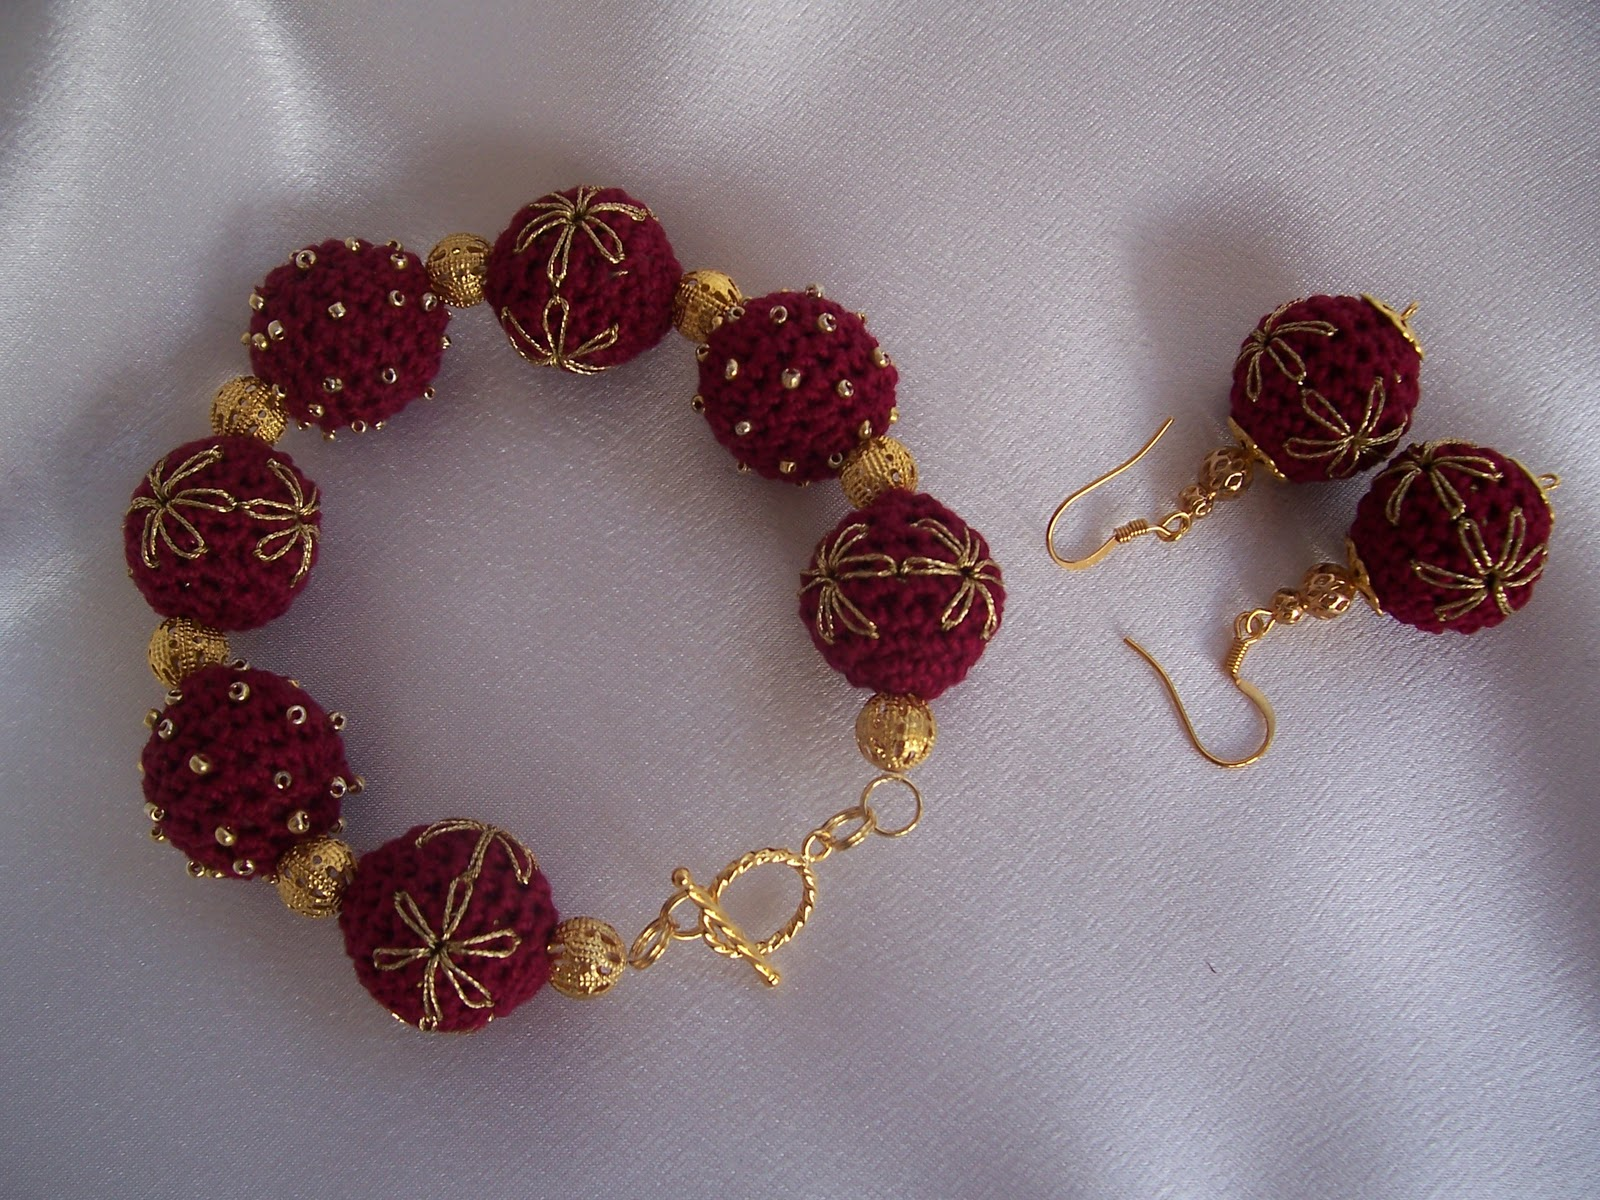 Over 50 Free Bracelet Patterns